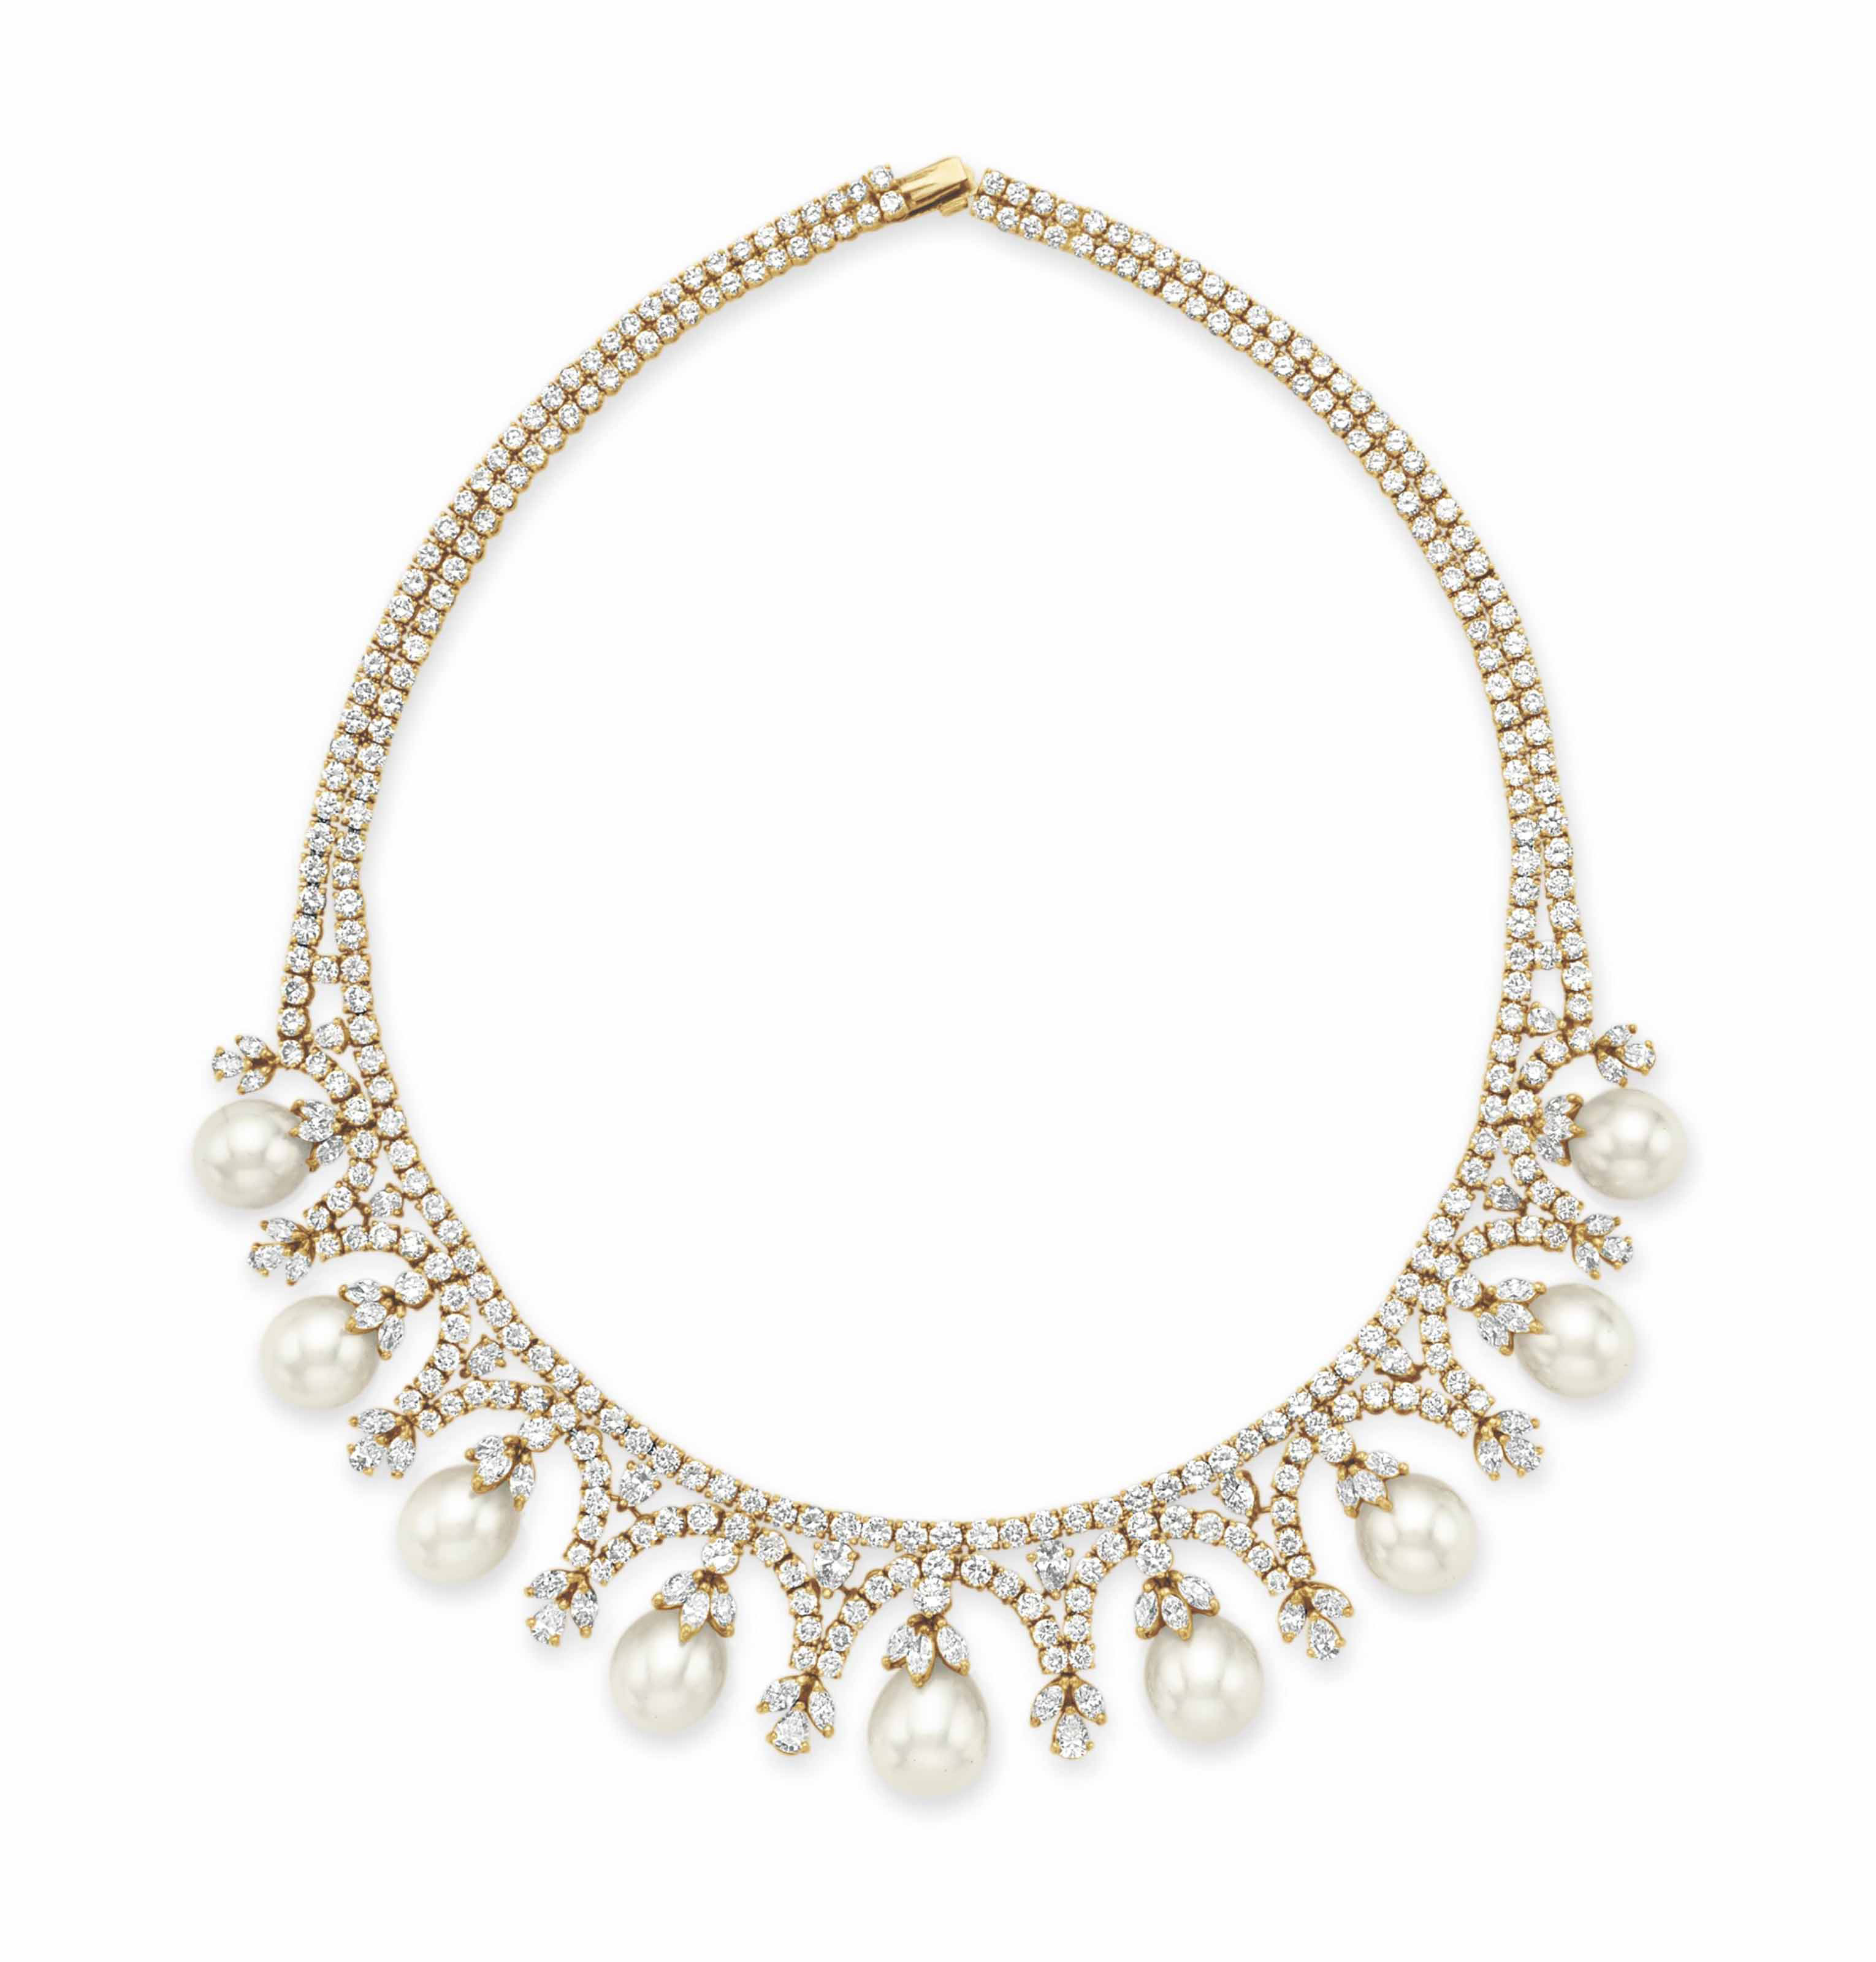 A CULTURED PEARL AND DIAMOND NECKLACE, BY CHANTECLER